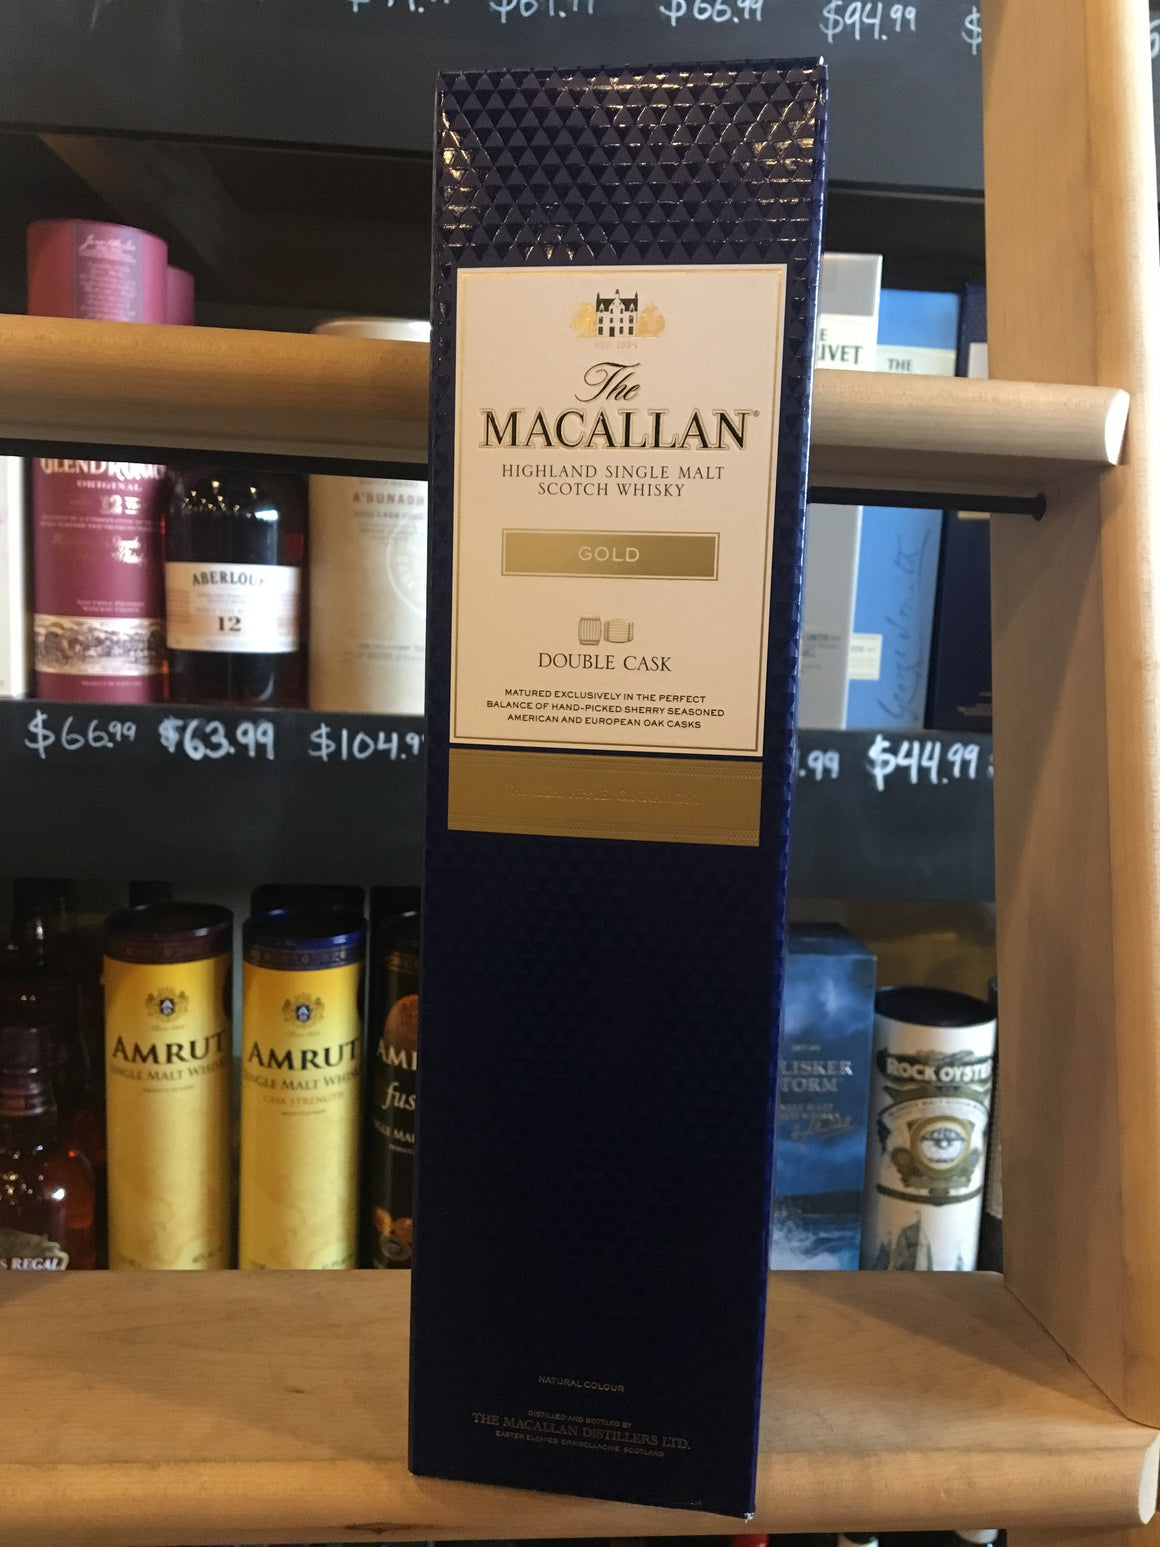 THE MACALLAN GOLD DOUBLE CASK 750ML